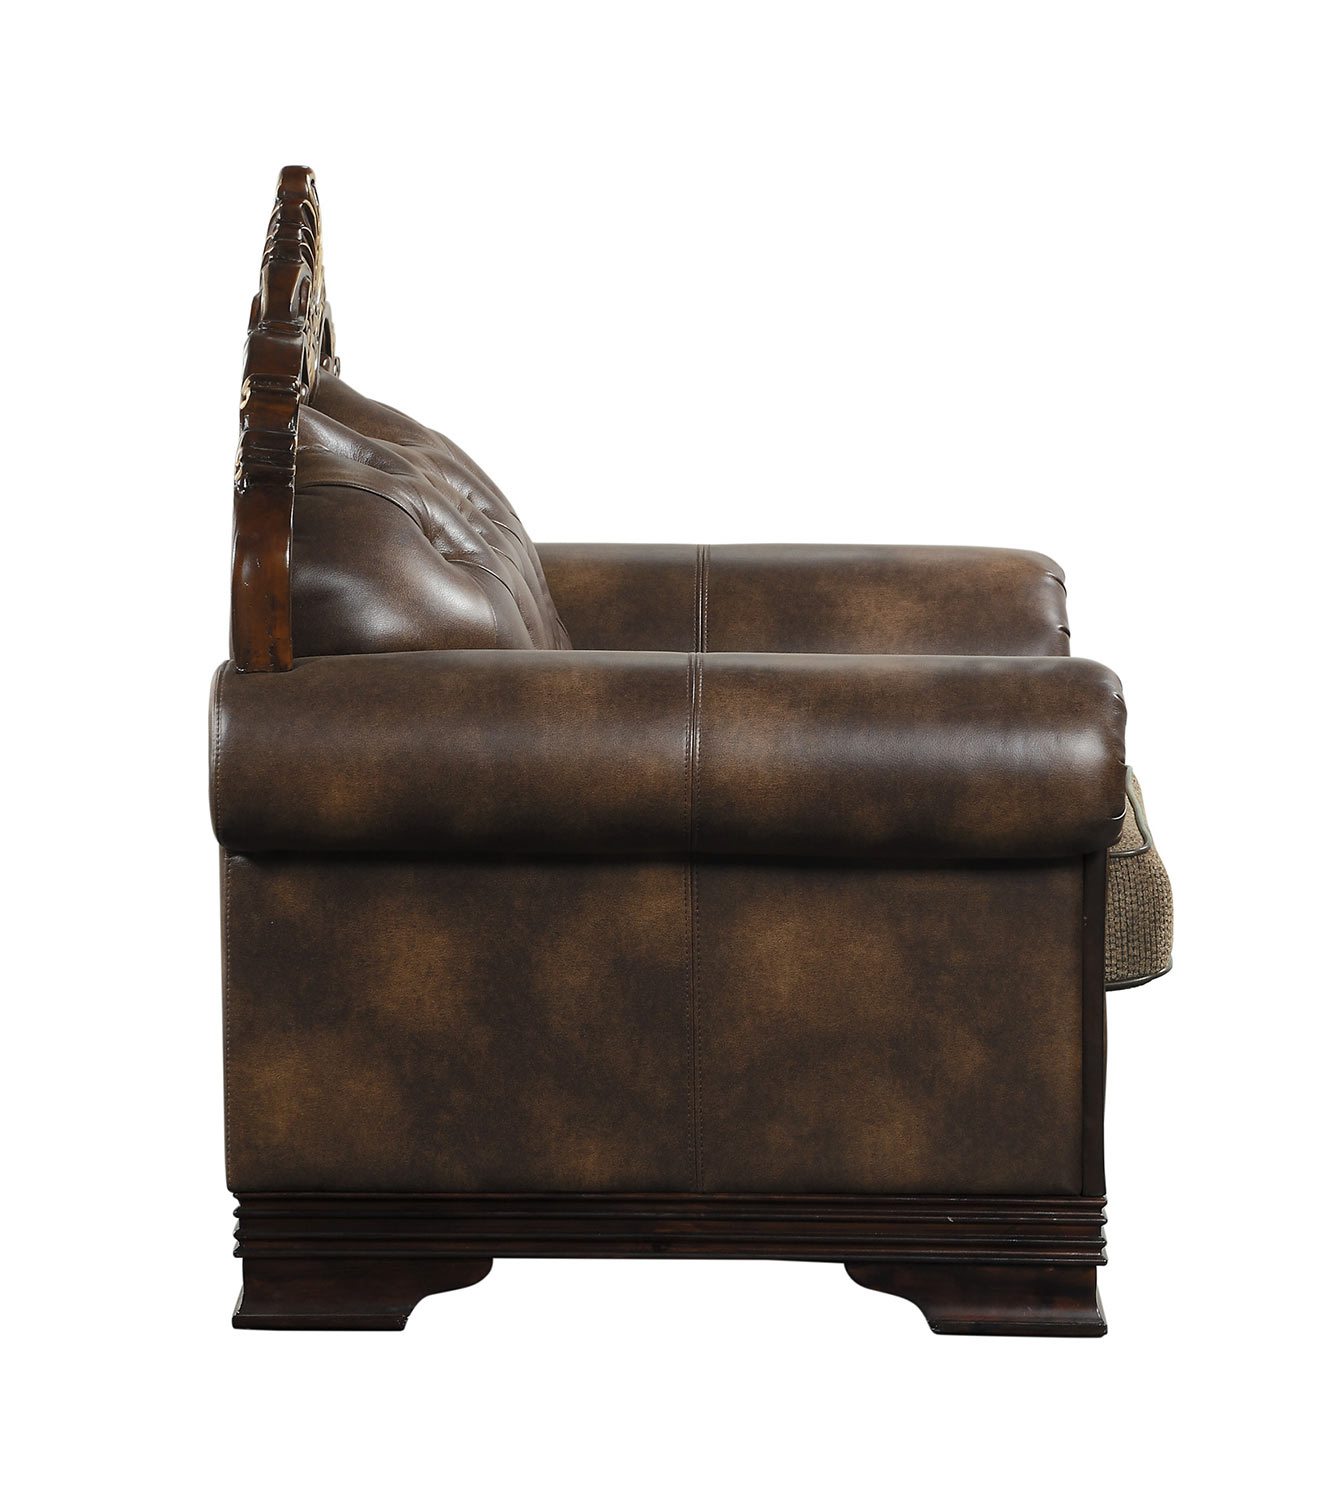 Homelegance Croydon Chair - Brown